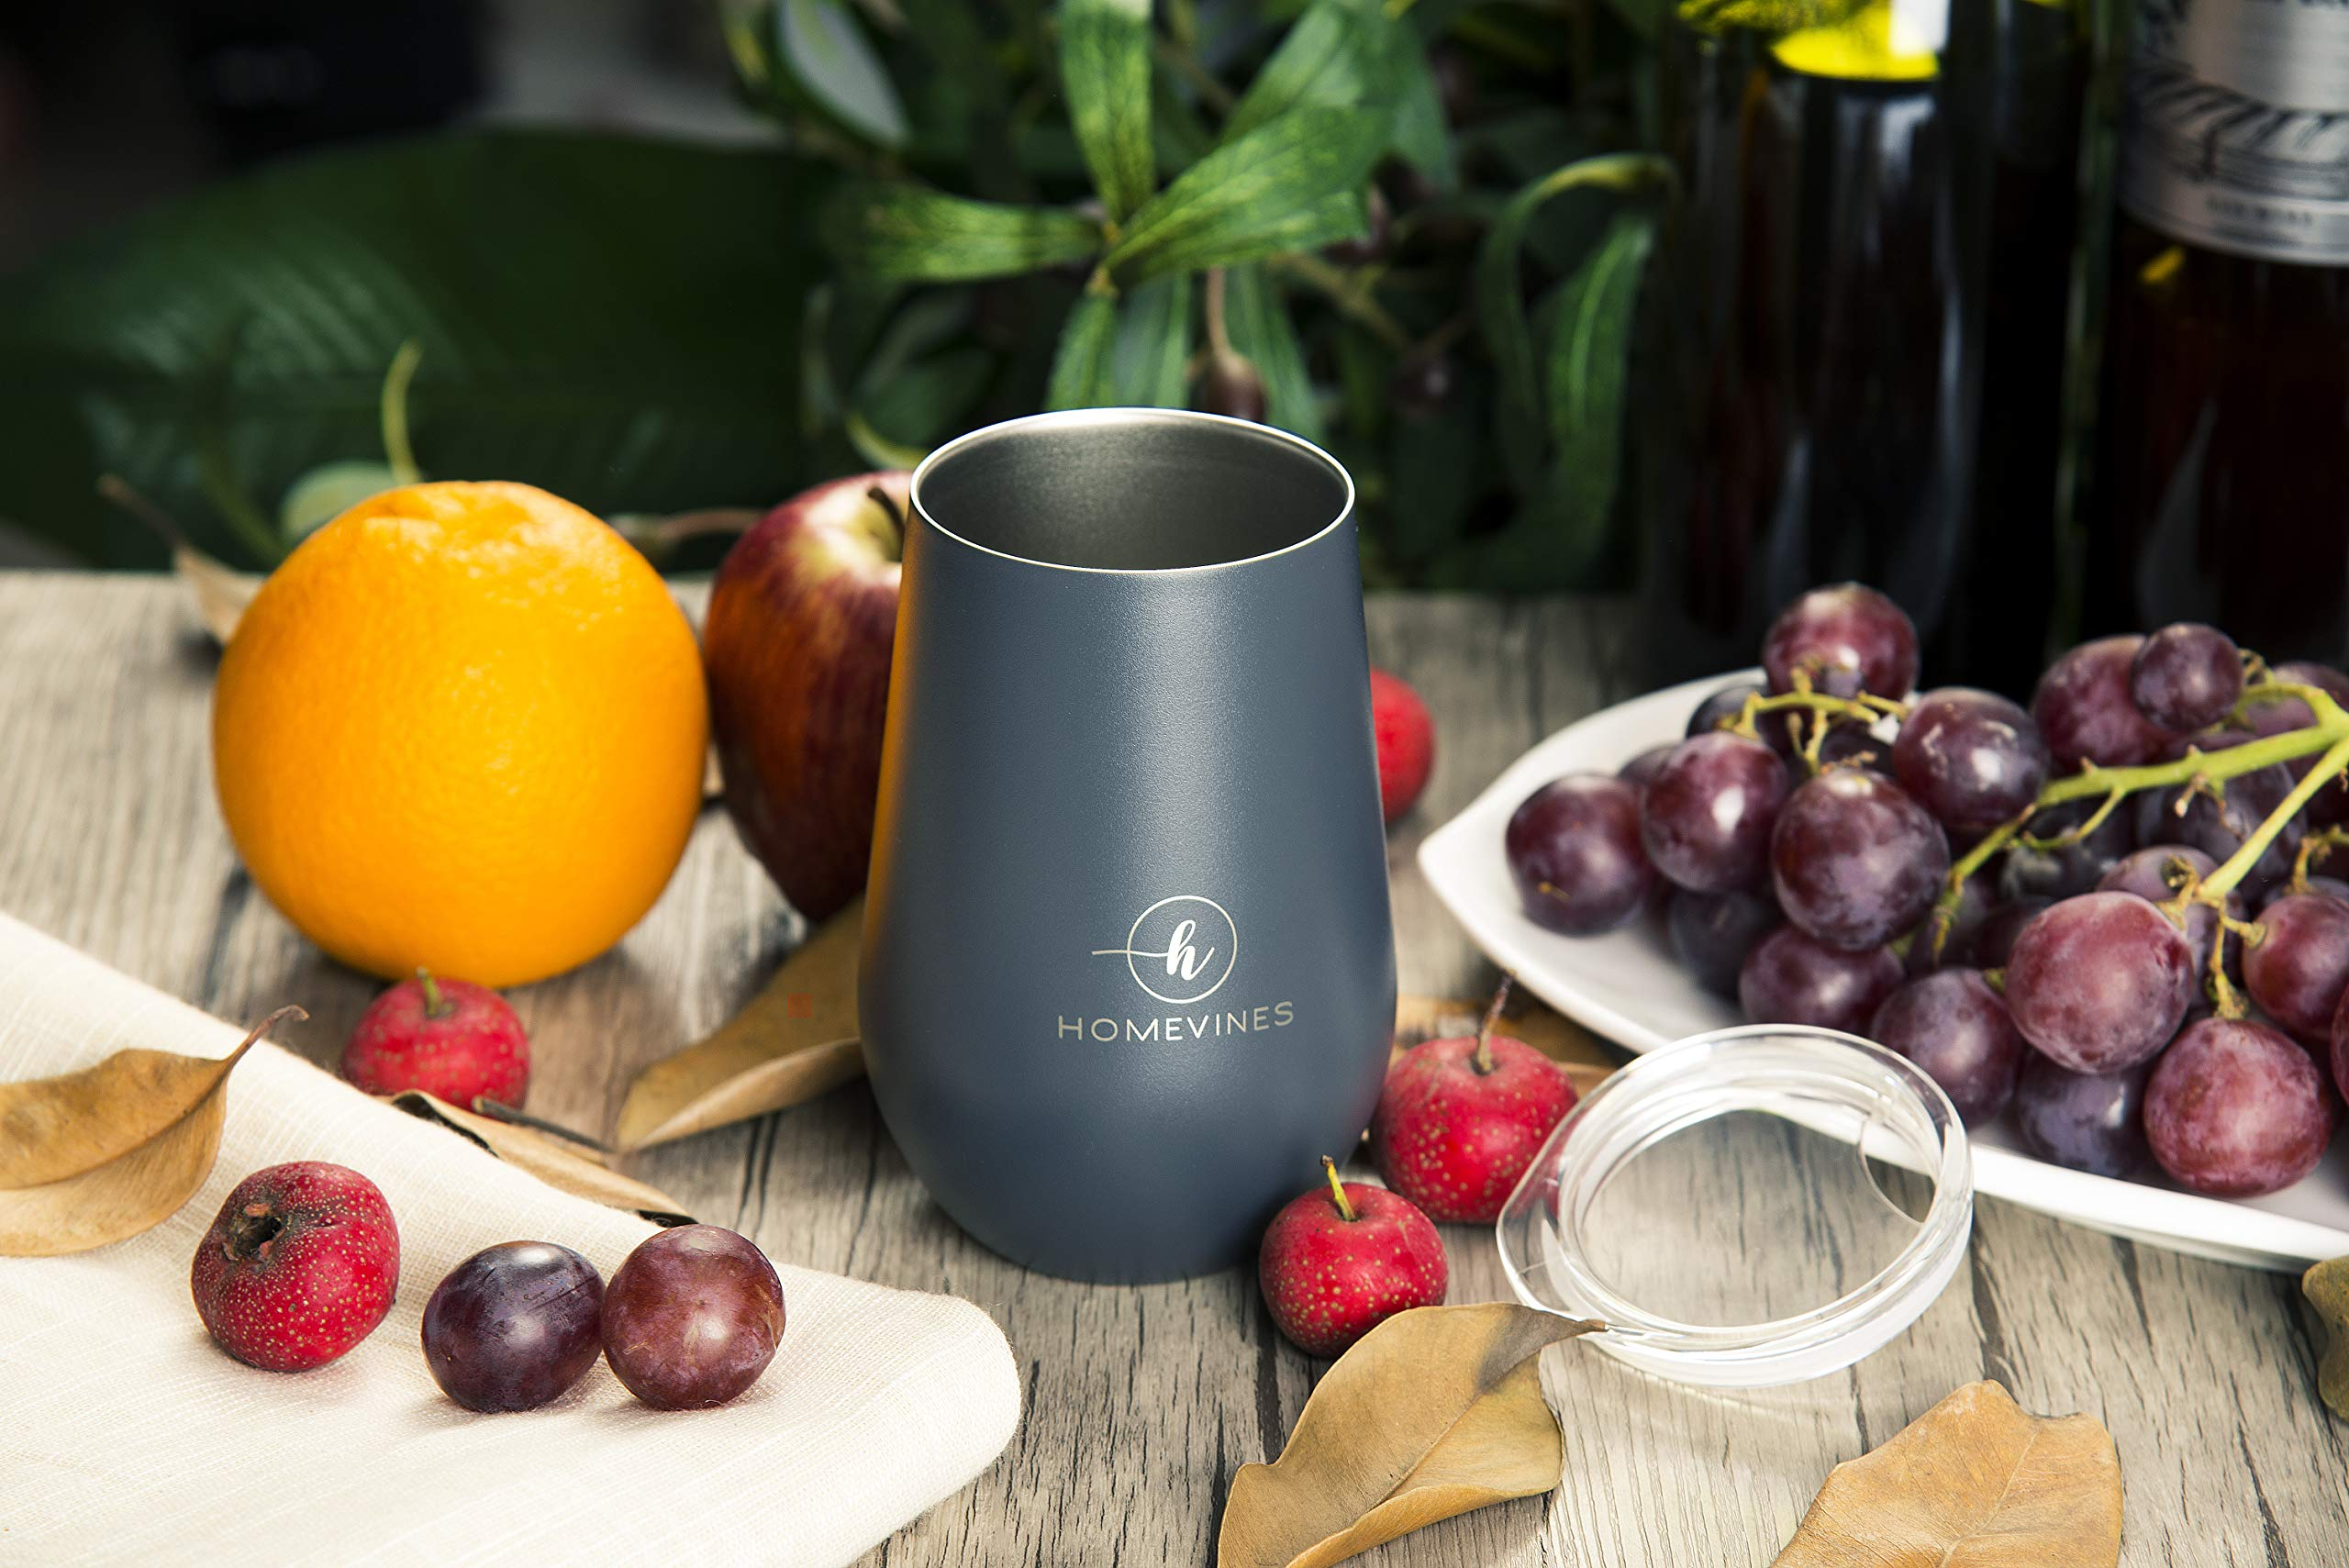 HomeVines Wine Tumbler With Lid - Insulated 12 oz Stainless Steel Wine Tumblers & Portable Stemless Glasses (Travel Adult Cups Perfect For Wine, Coffee, Drinks, Cocktails, Tea) by HomeVines (Image #5)